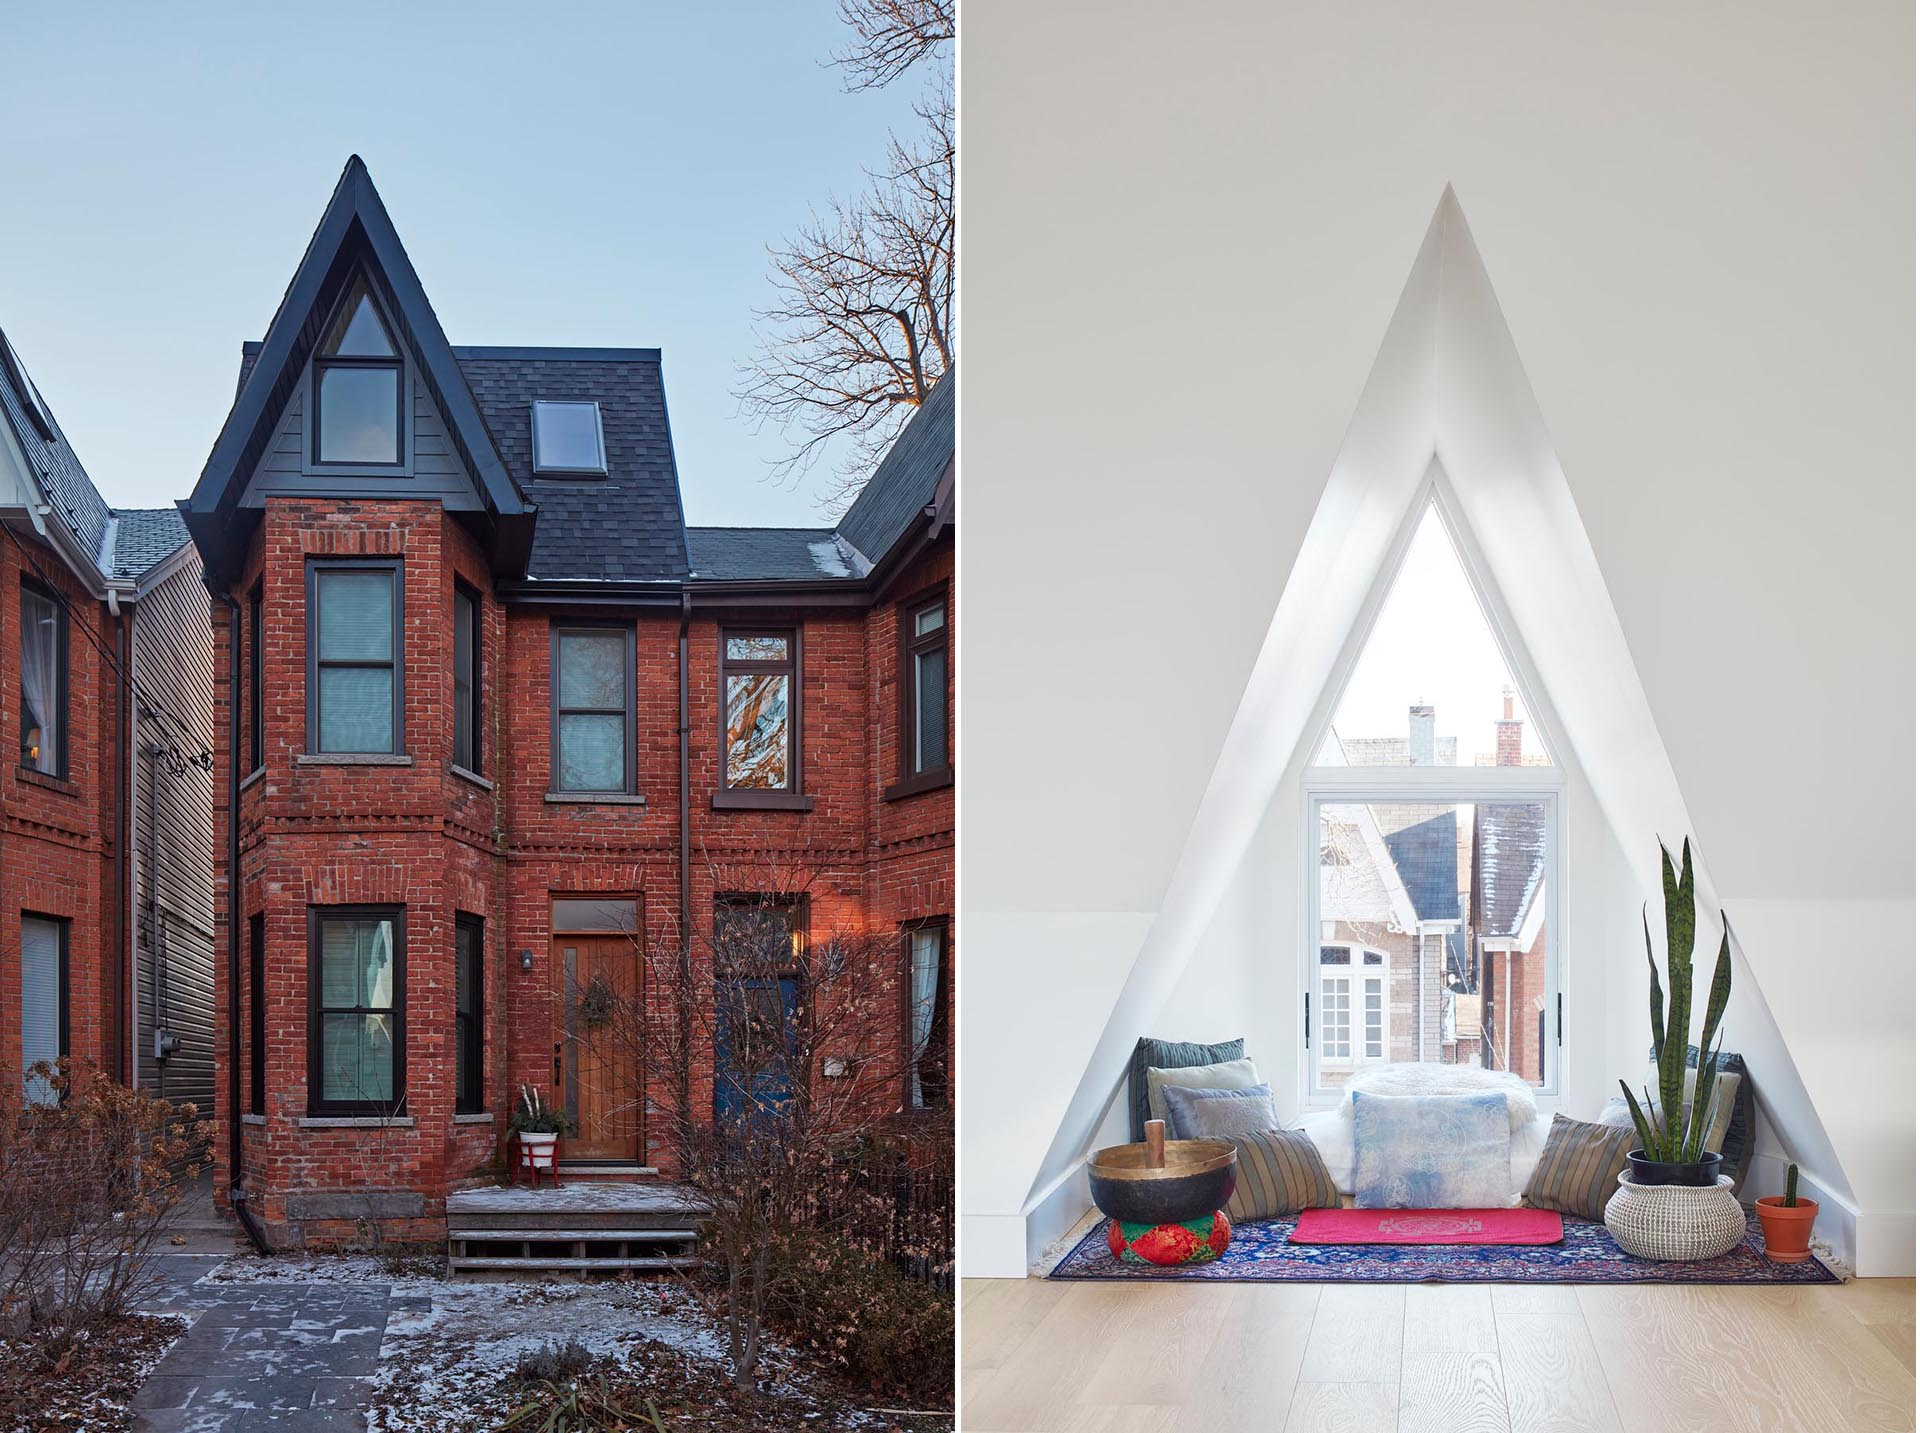 A modern extension has been added to a Victorian home, and includes a triangular window furnished as a meditation space.